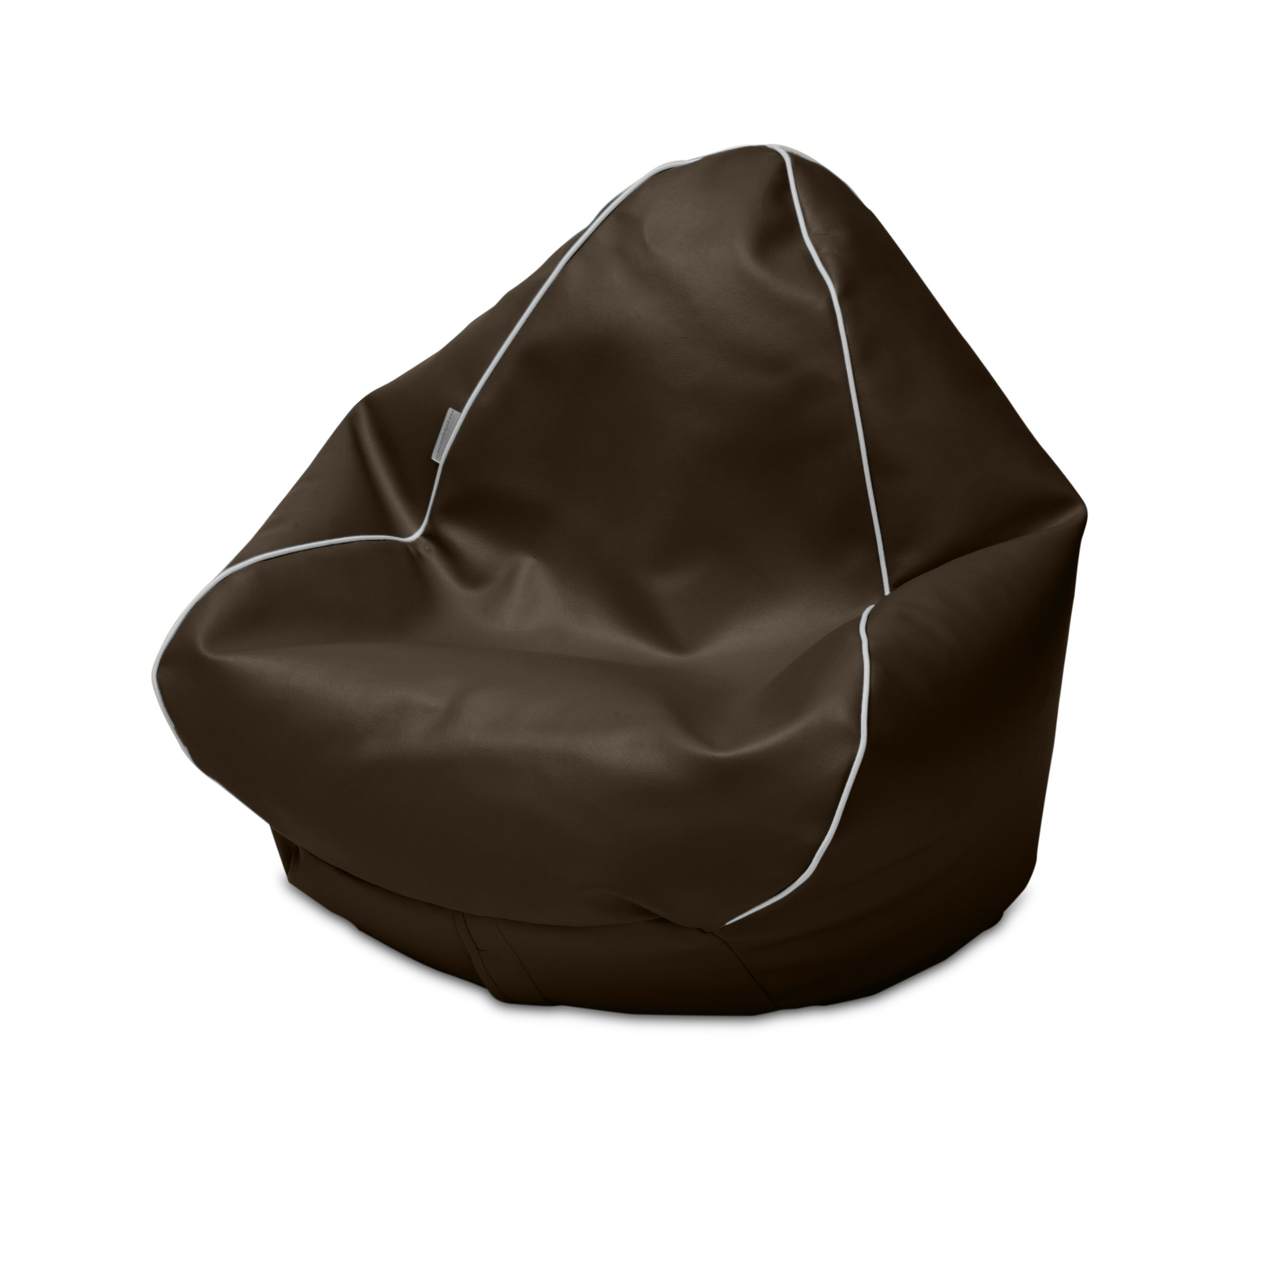 Retro Kids Bean Bag in chocolate